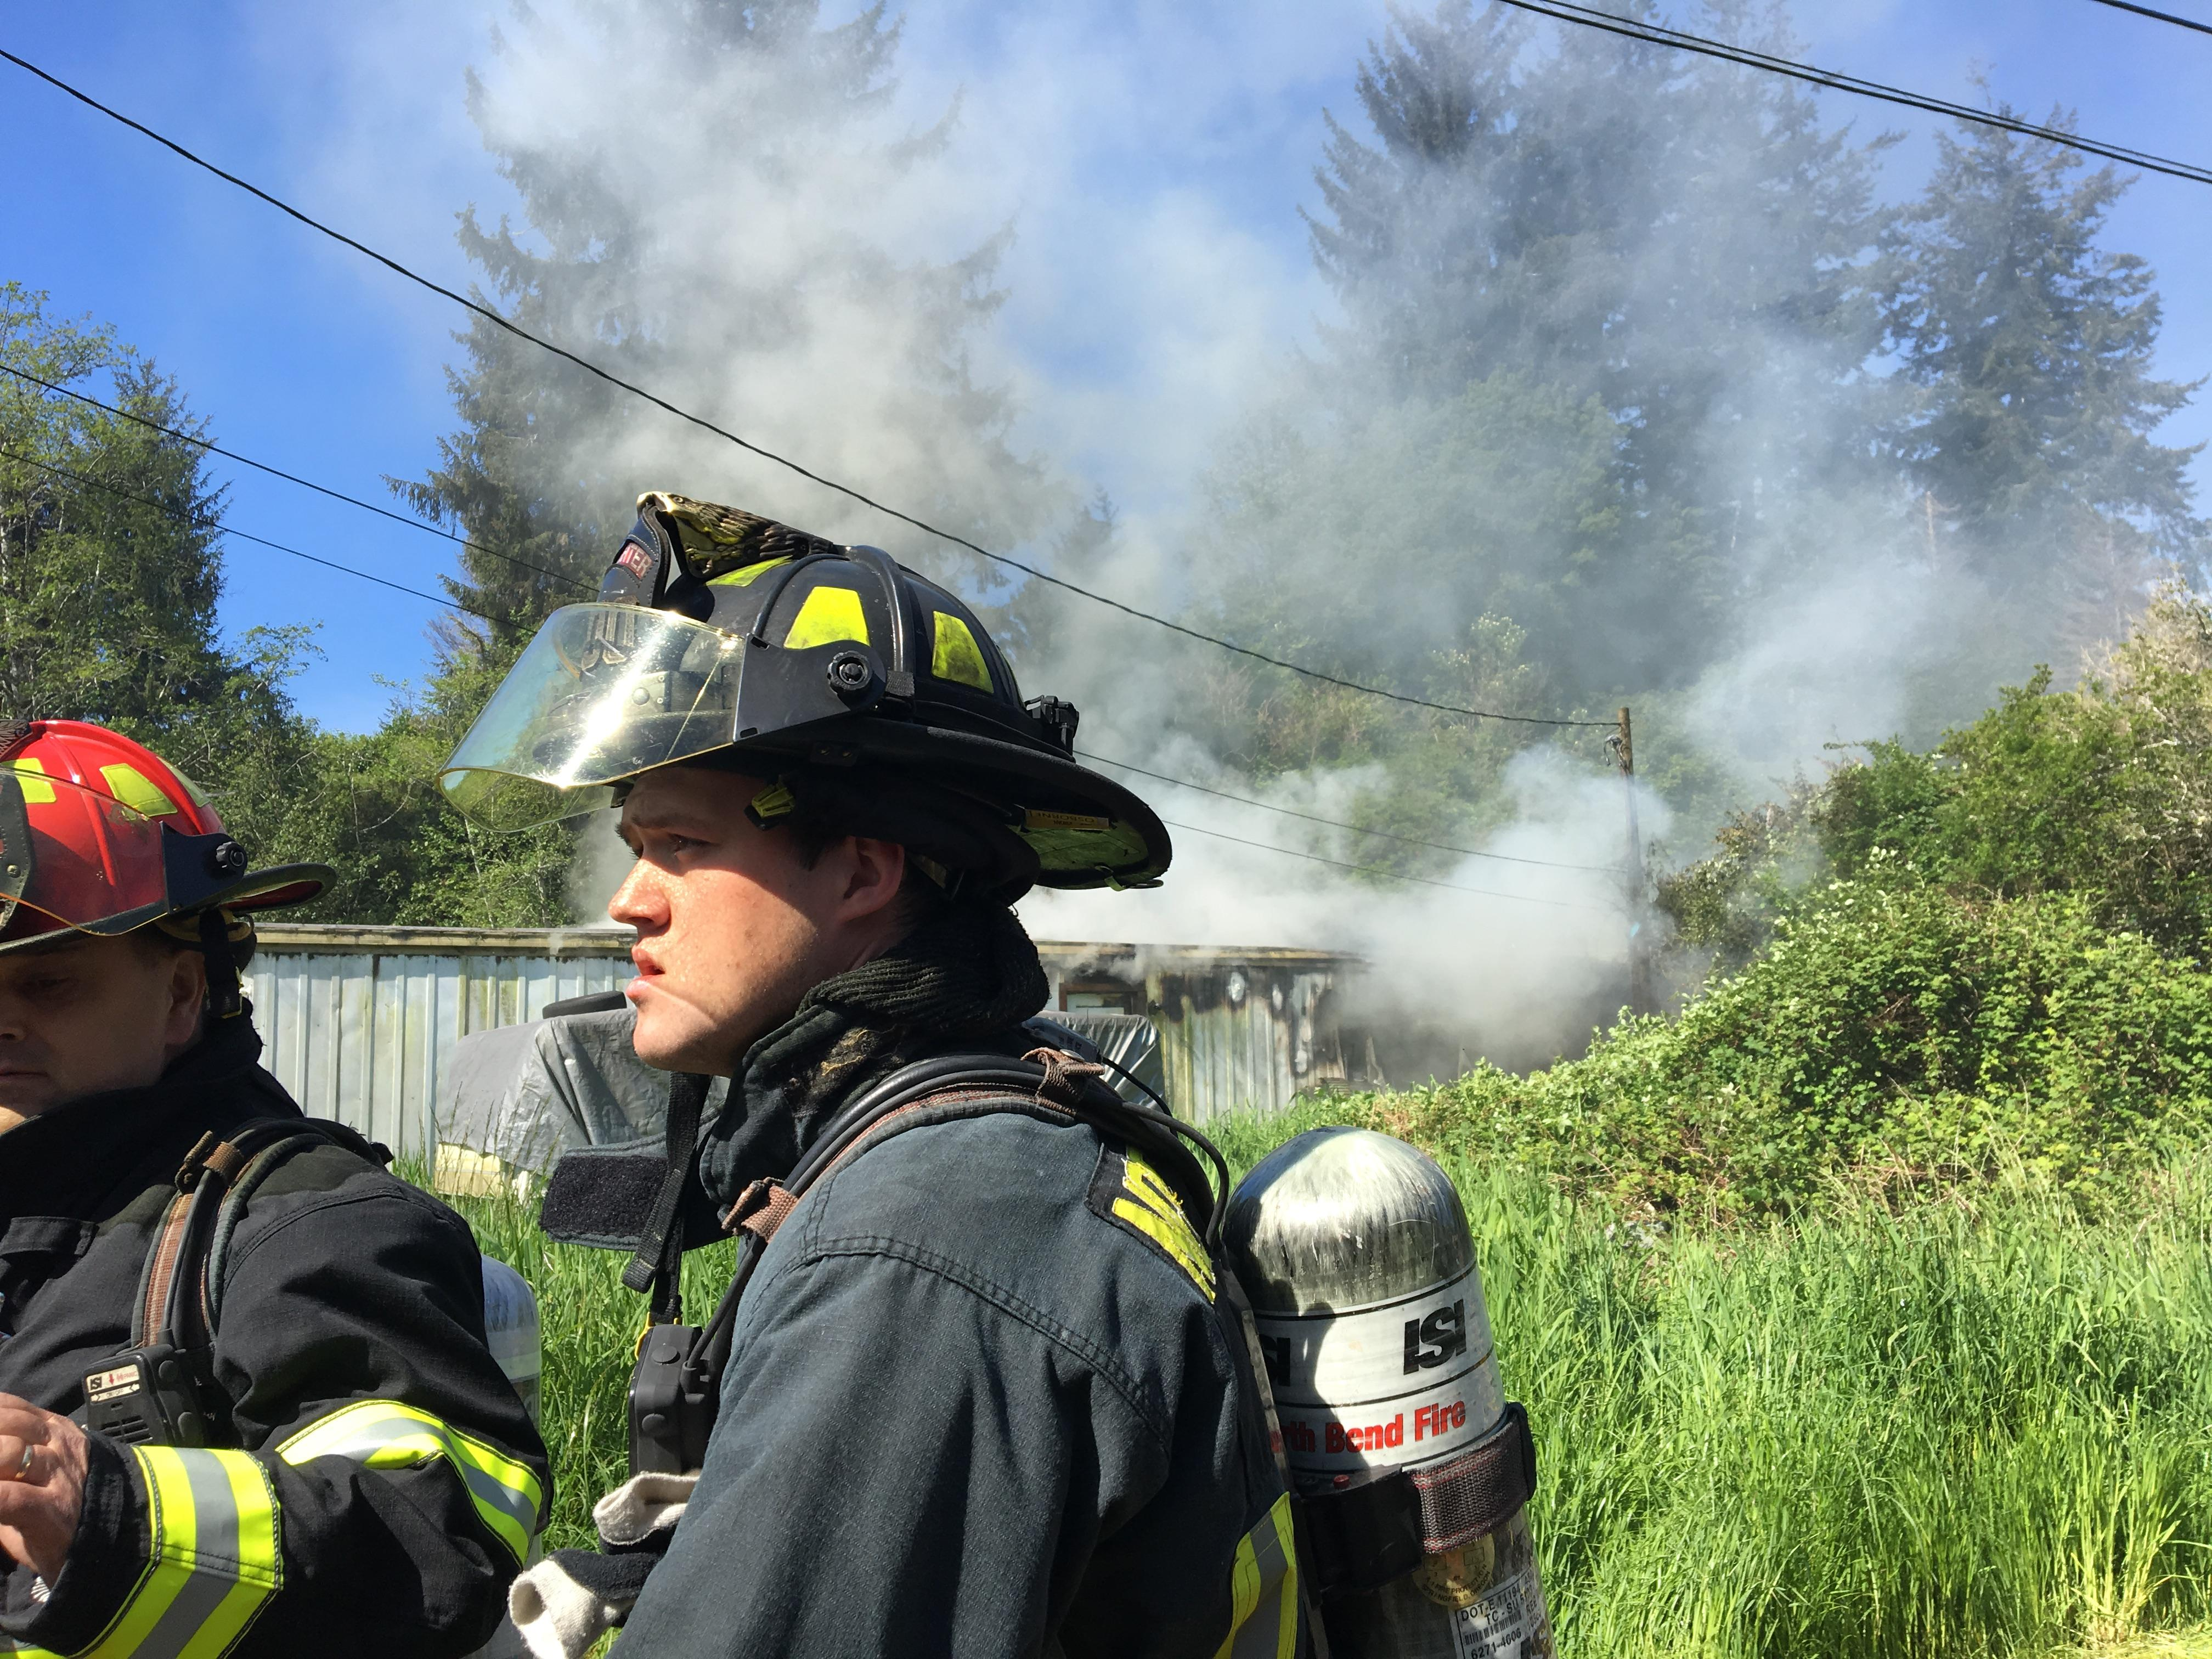 Firefighters battle a house fire on Red Dike Rd in Coos Bay, May 10, 2017. (SBG photo)